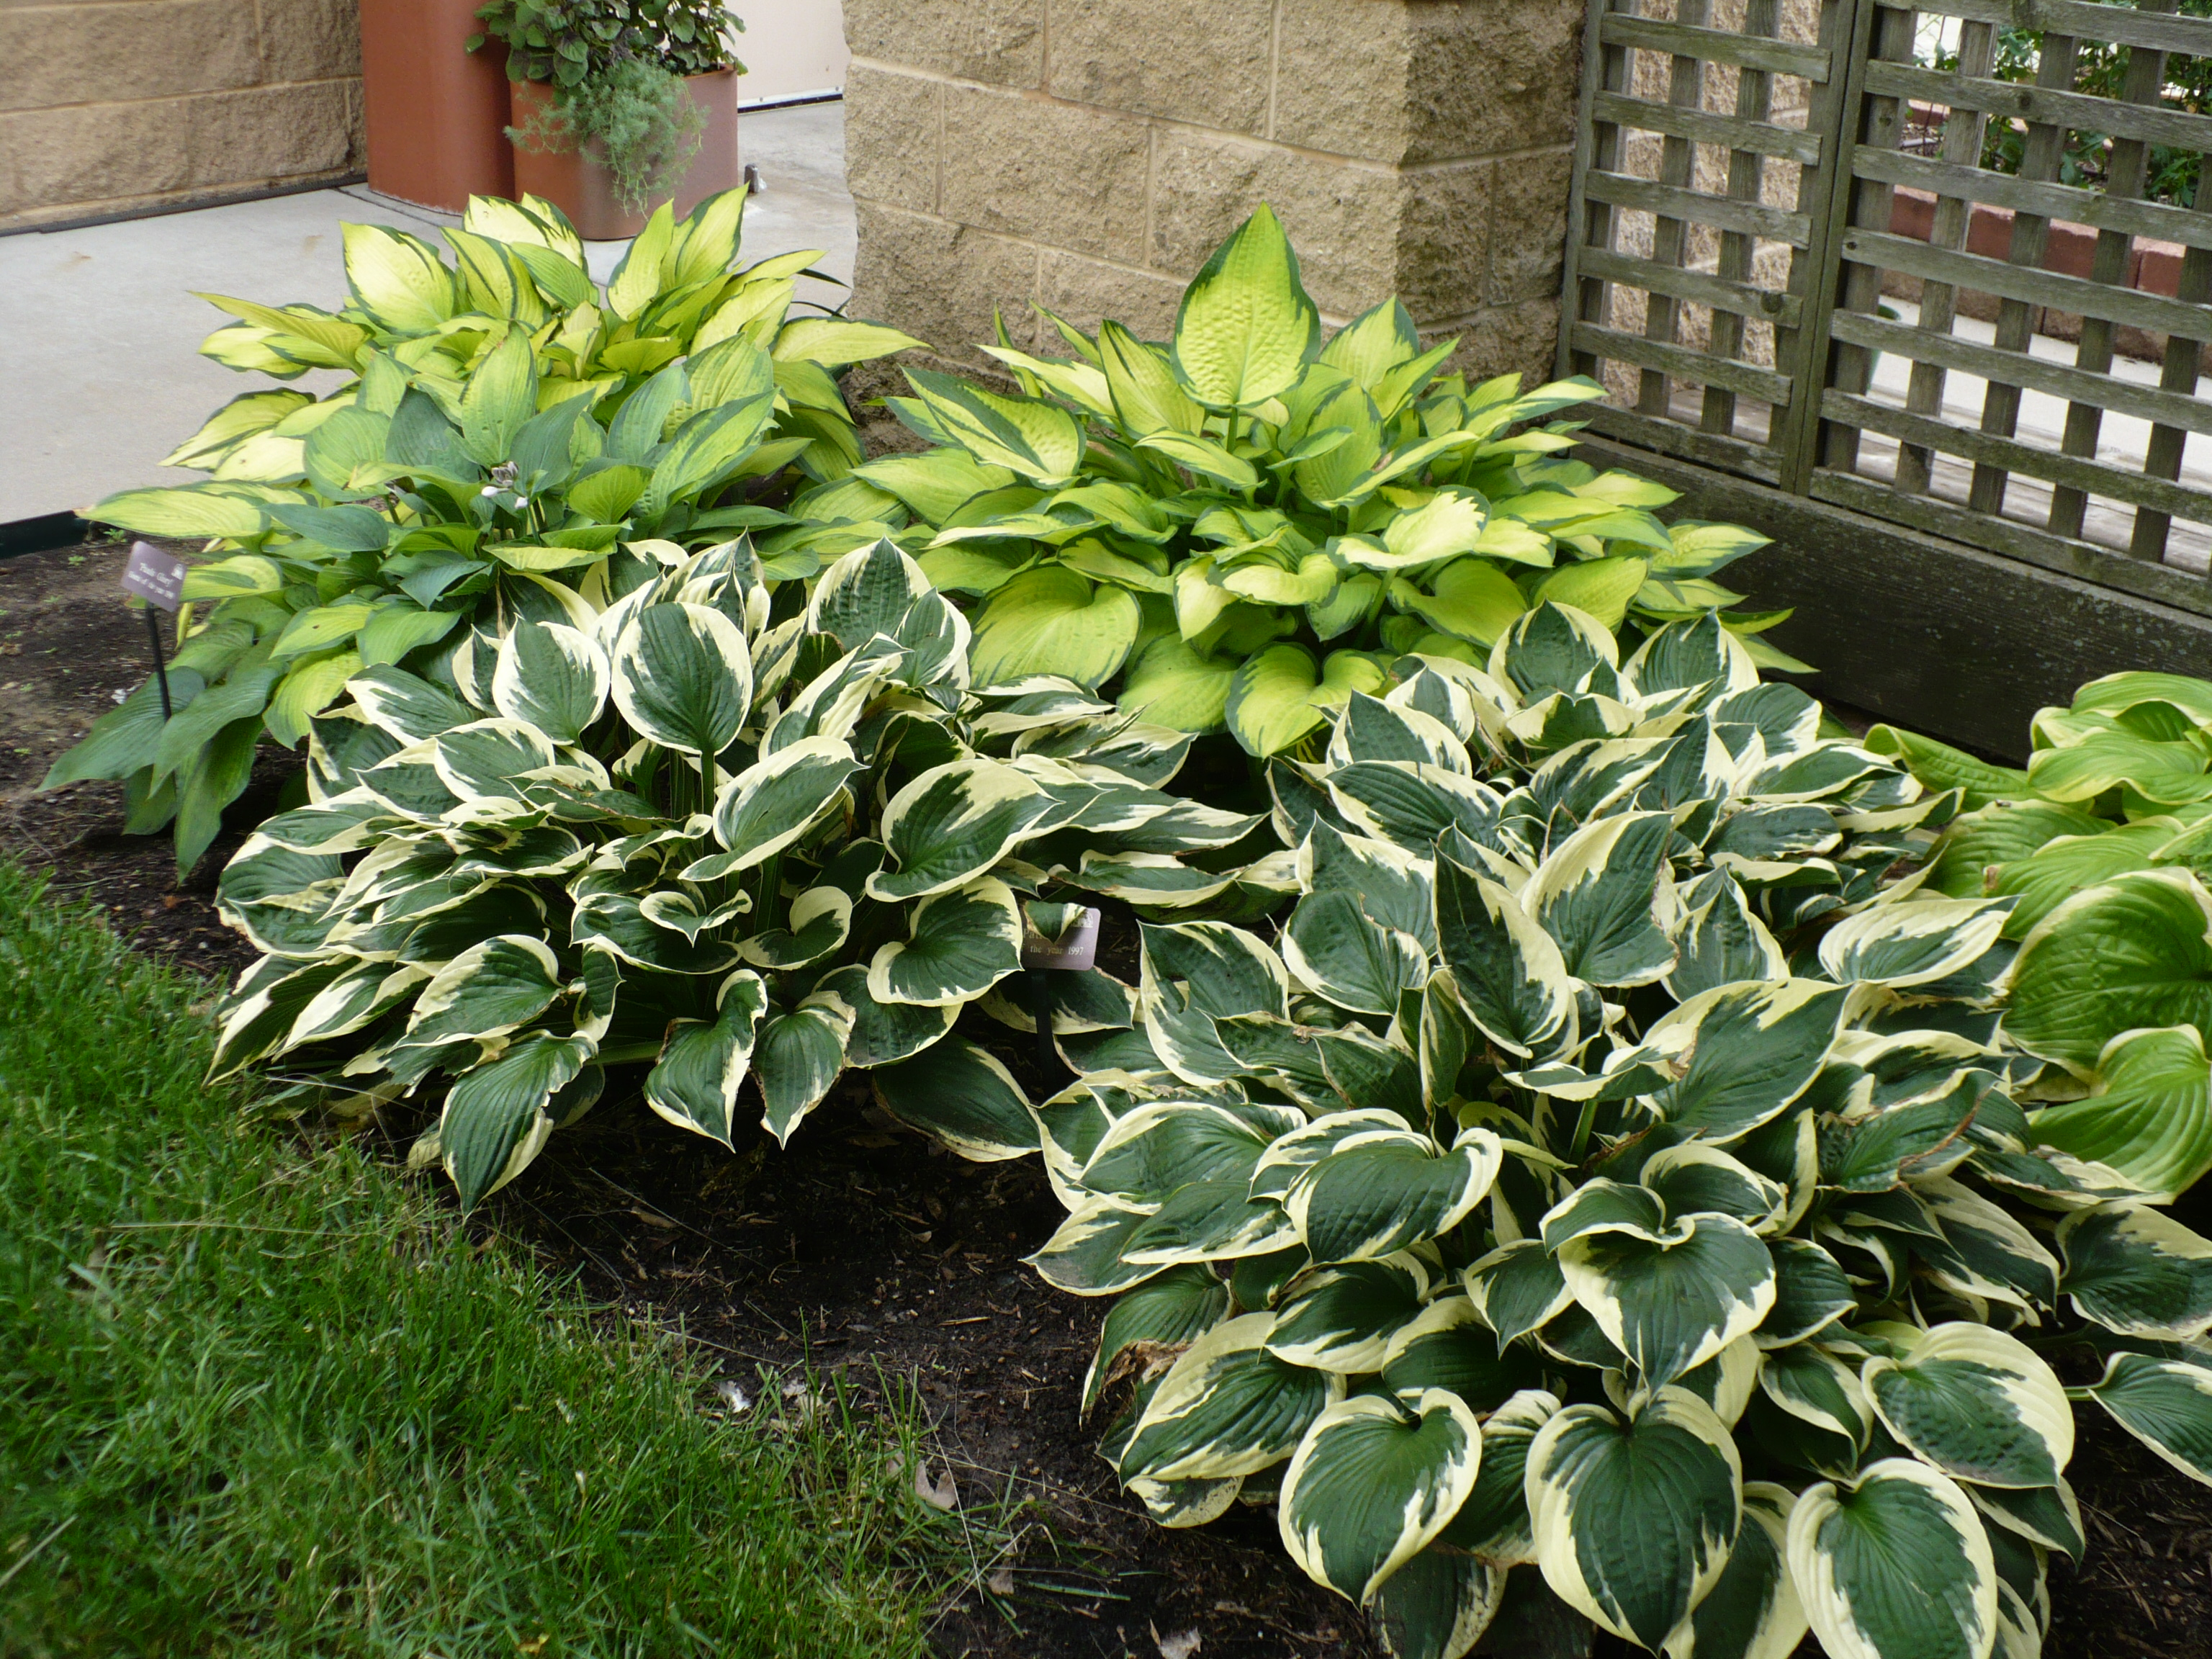 whats in bloom – Hosta Garden Plan